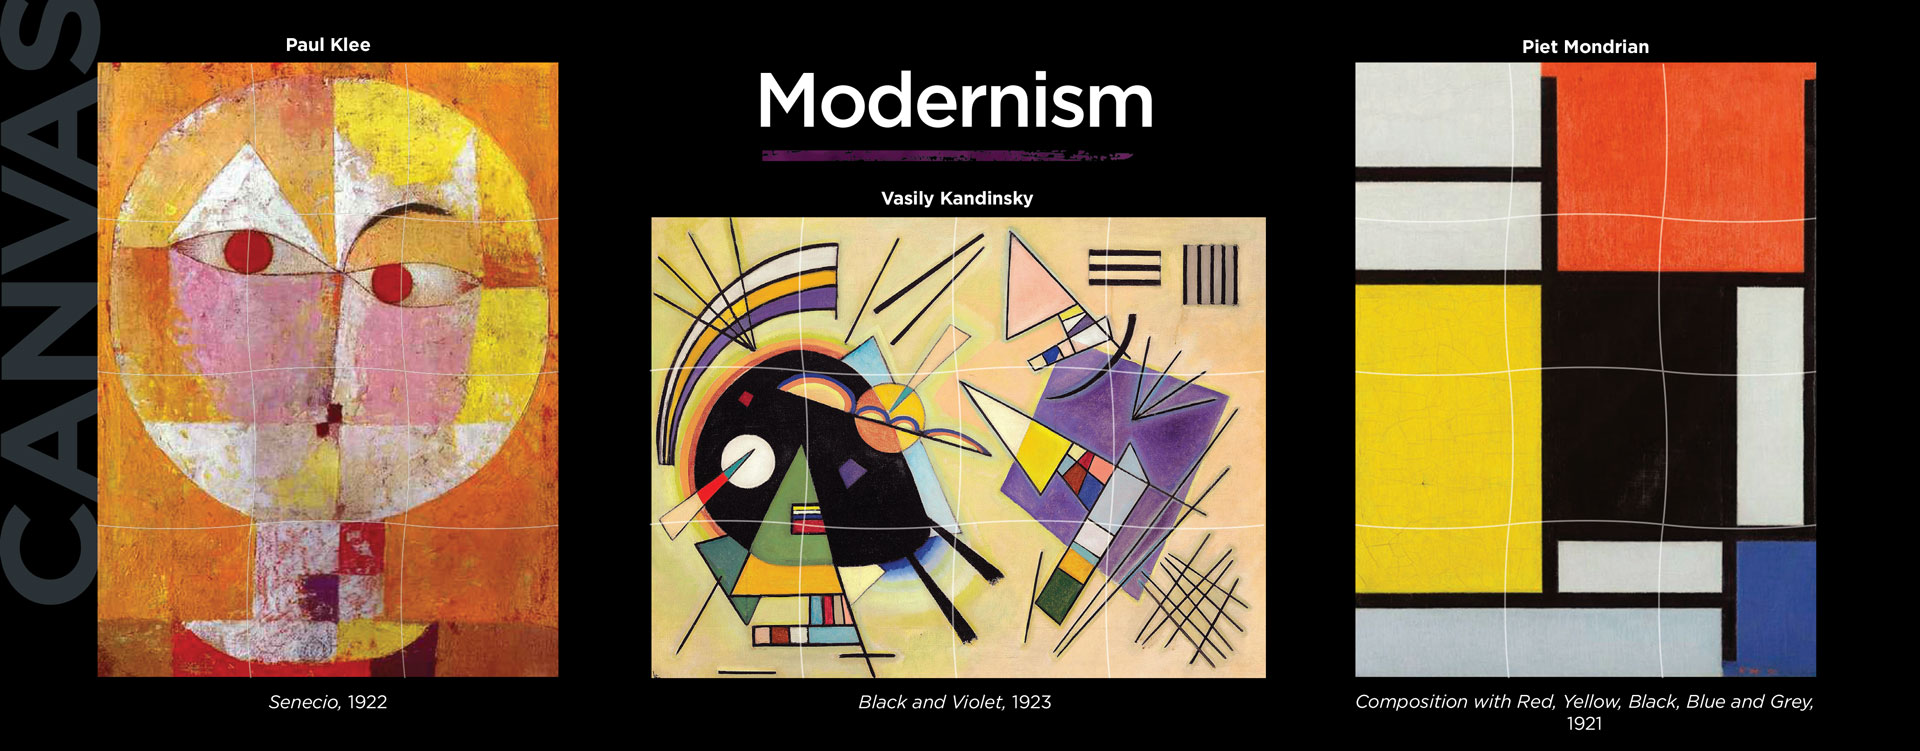 modernism game puzzle